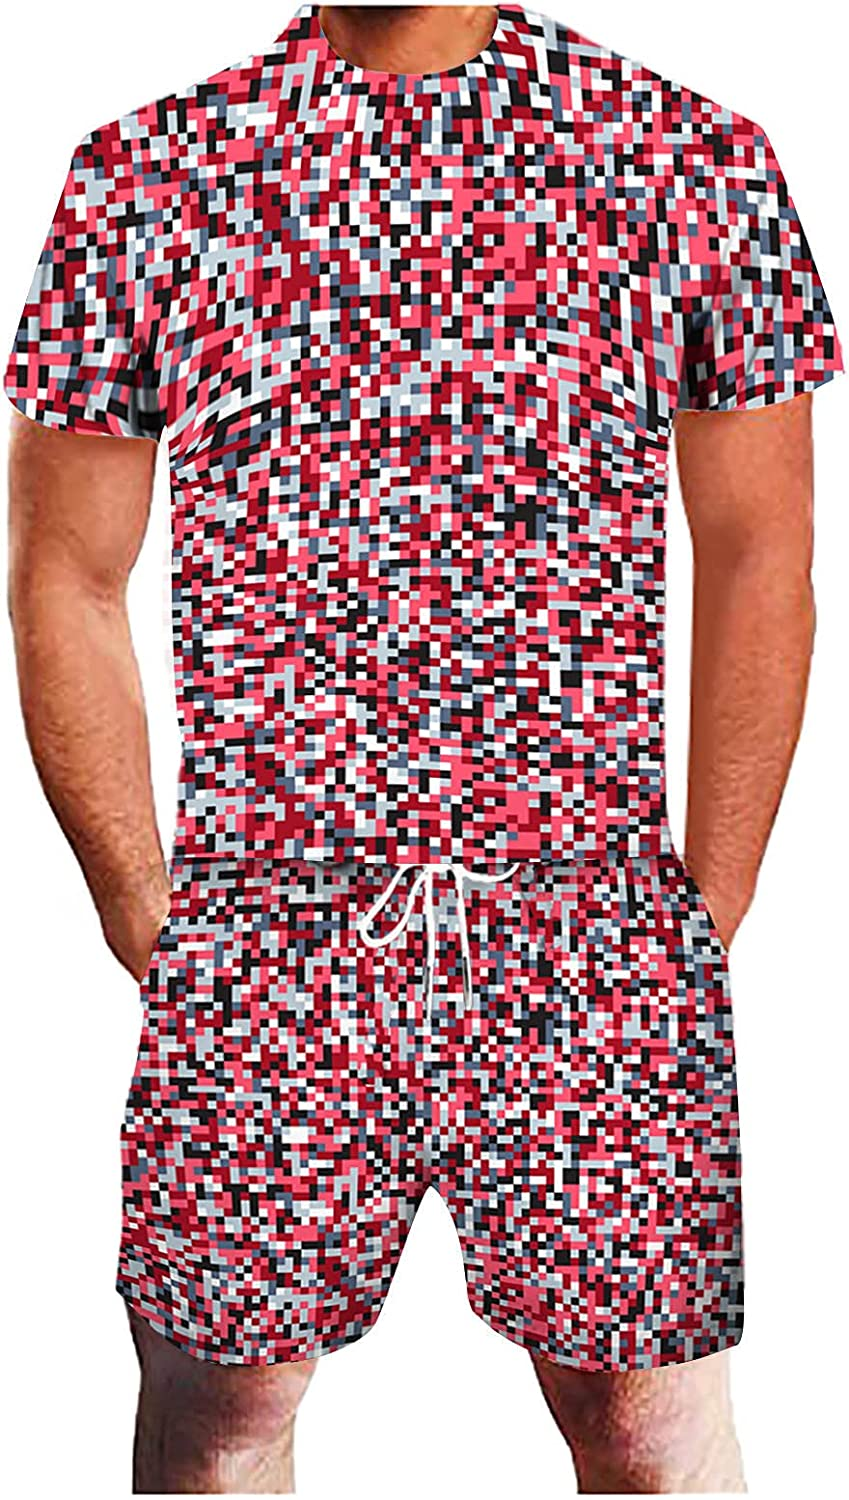 FUNEY Men's 3D Geometric Abstract Printed T-Shirt and Shorts Set Sports Tracksuit Casual Summer Athletic Suit 2PC Sweatsuits